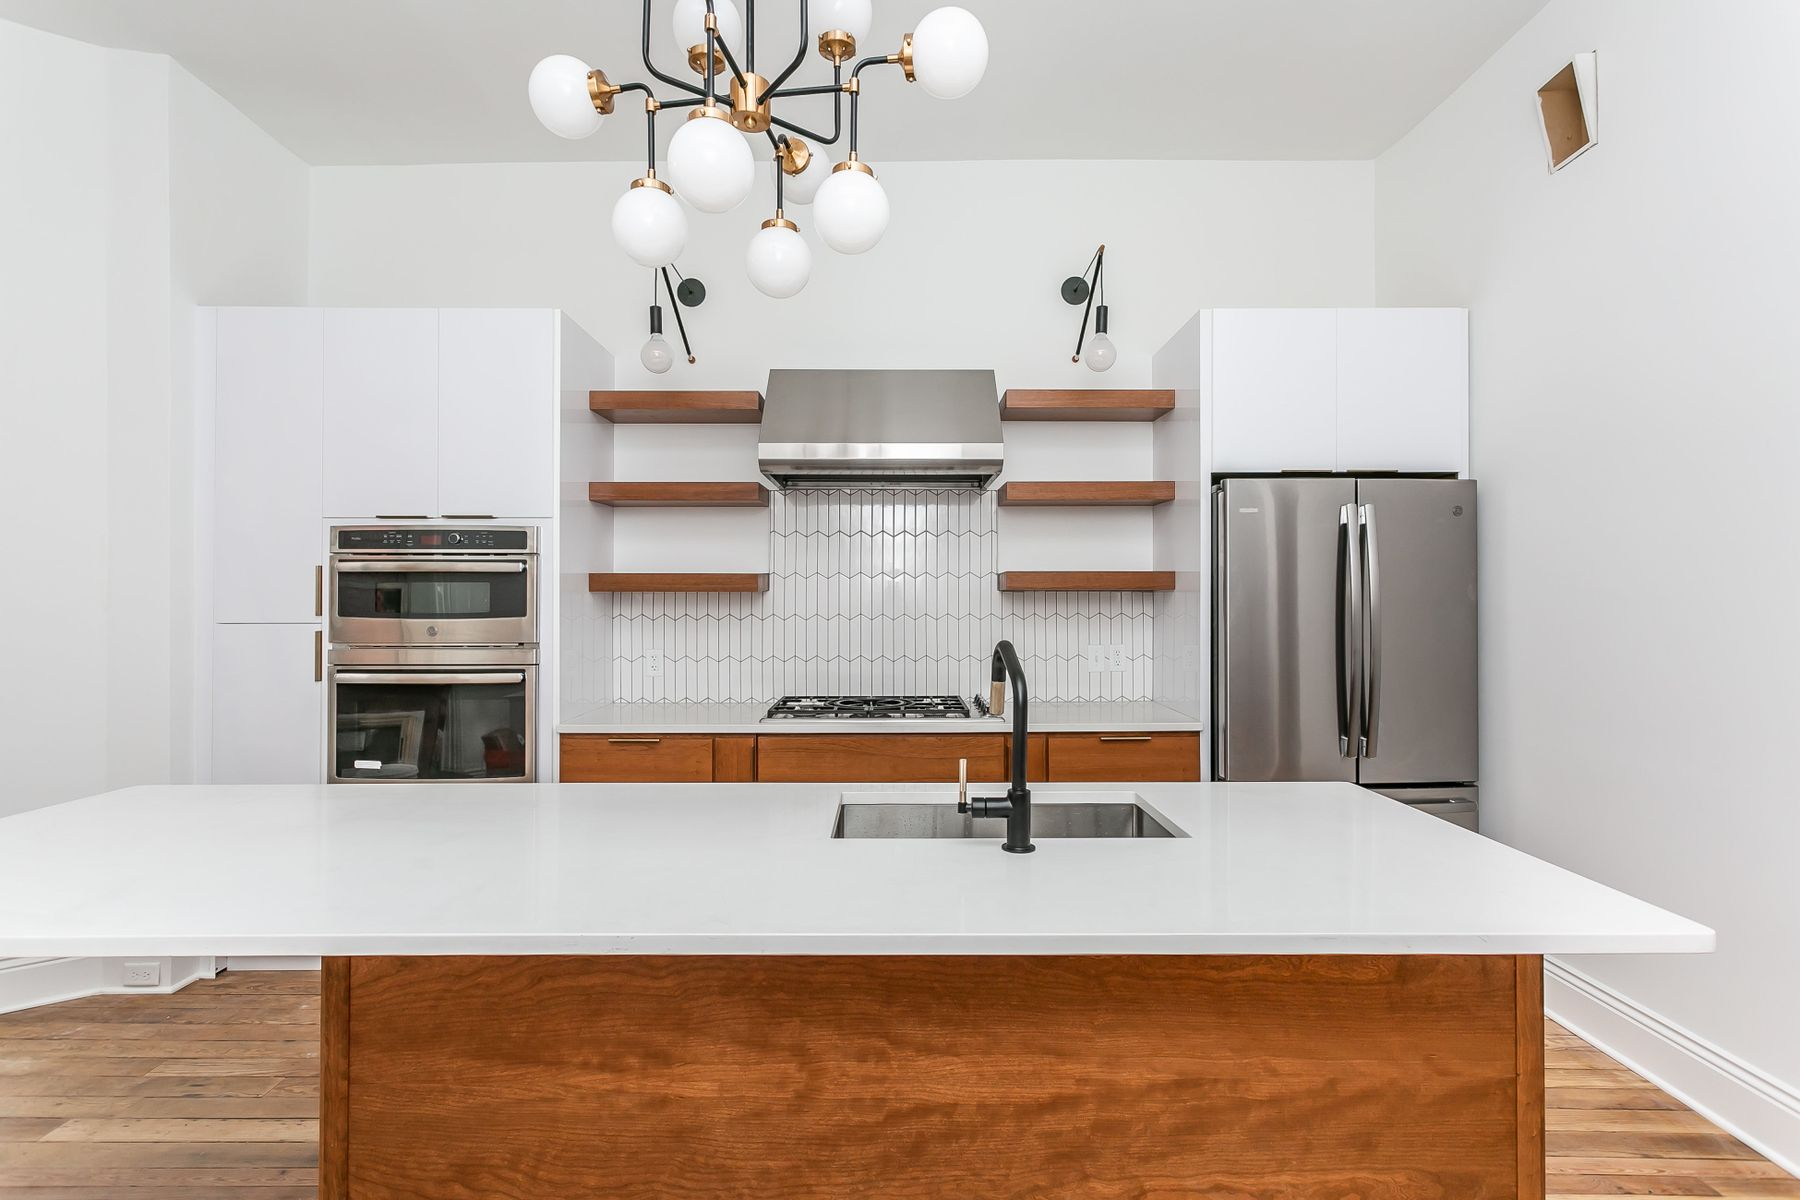 Kitchen image in new town home